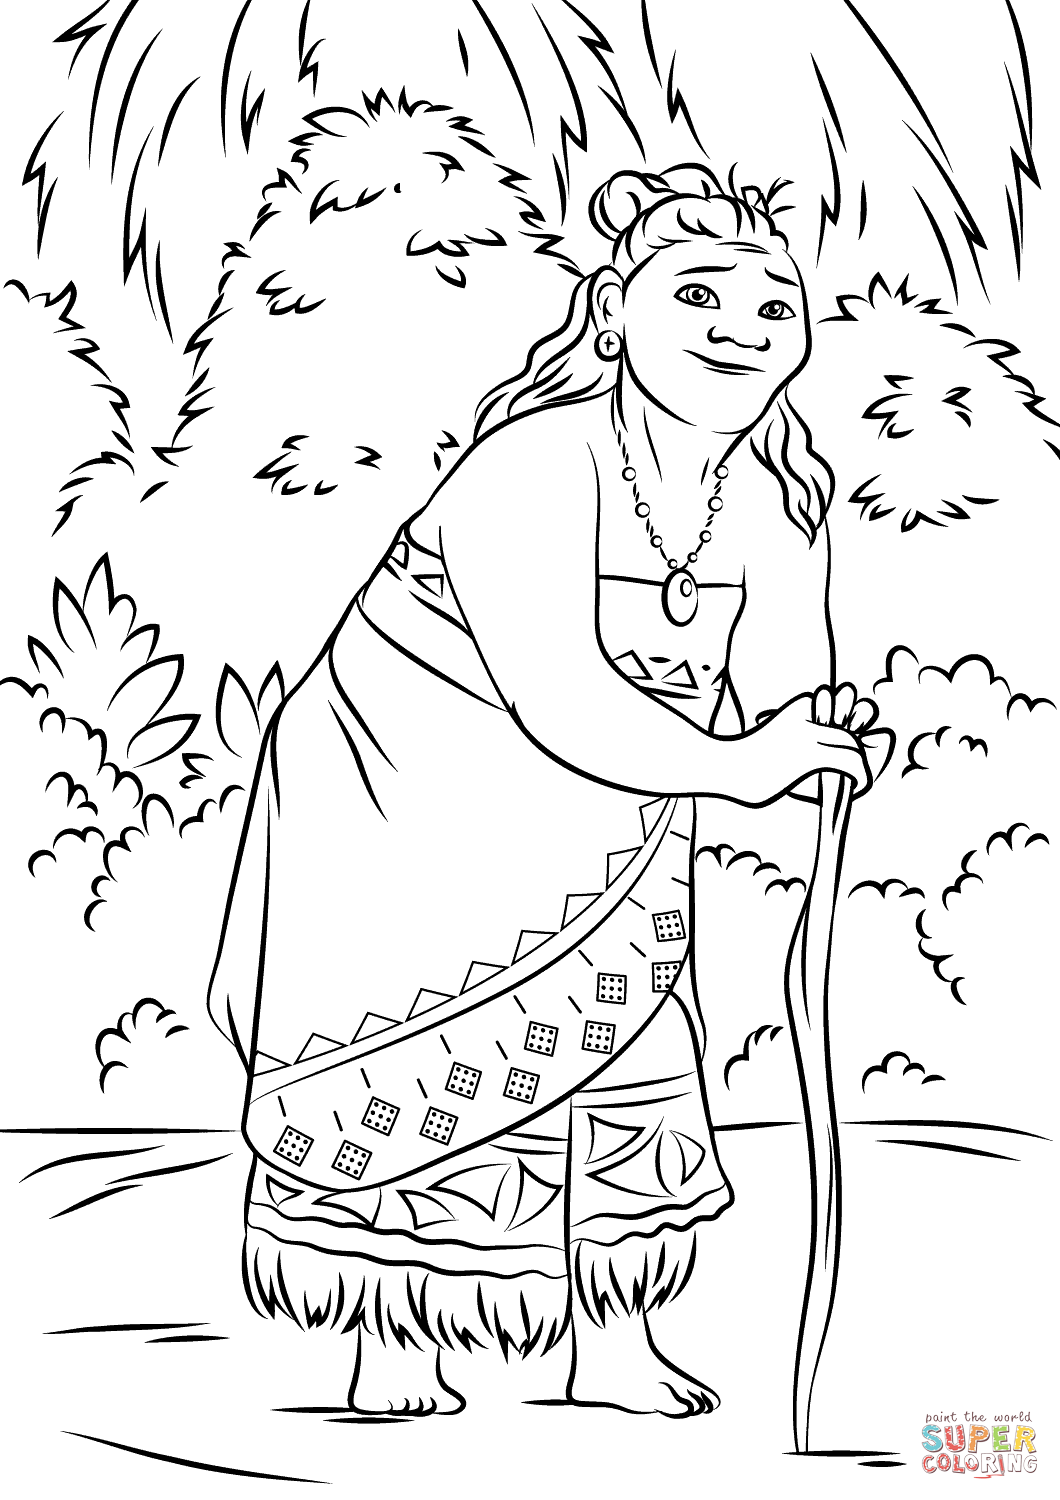 el coloring pages - photo#30